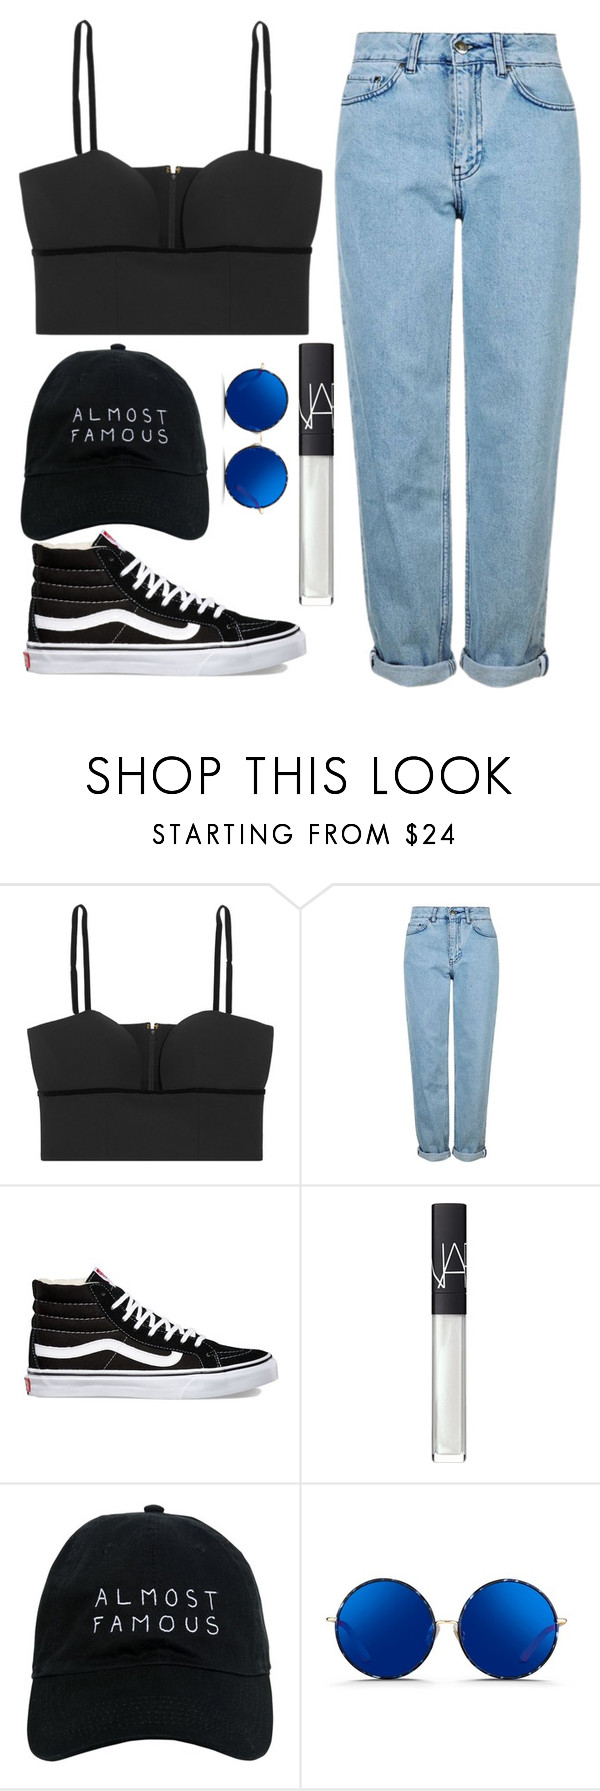 """""""i just reflect on them"""" by maddysleepy ❤ liked on Polyvore featuring Alexander McQueen, Topshop, Vans, NARS Cosmetics, Nasaseasons and Matthew Williamson"""